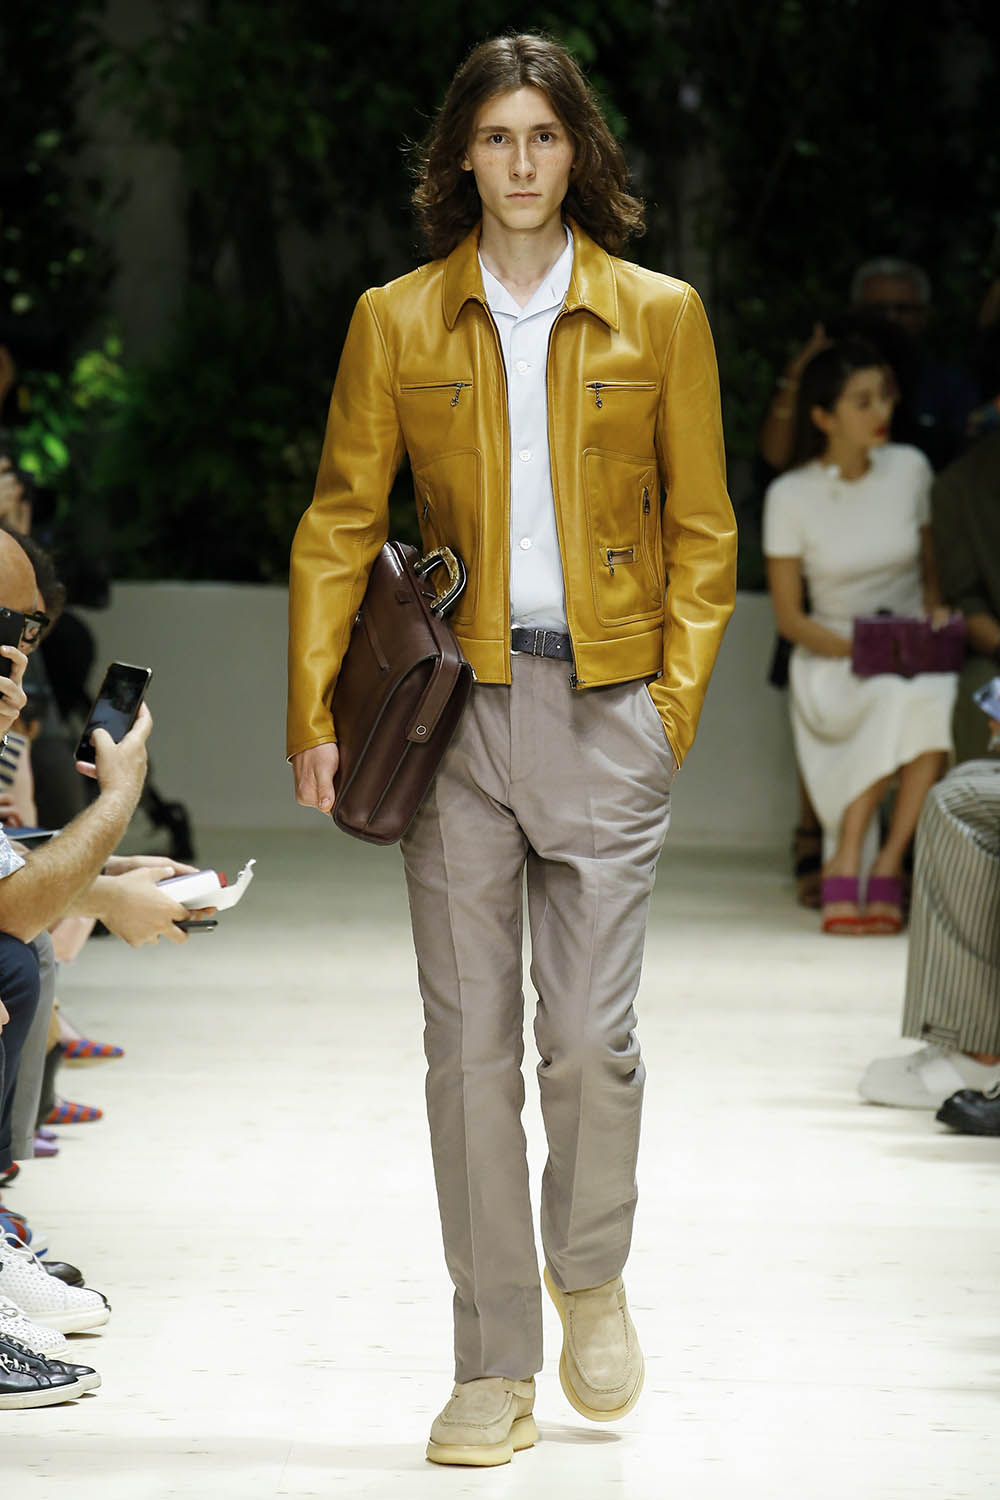 Model walking the catwalk at Salvatore Ferragamo SS18 men's fash